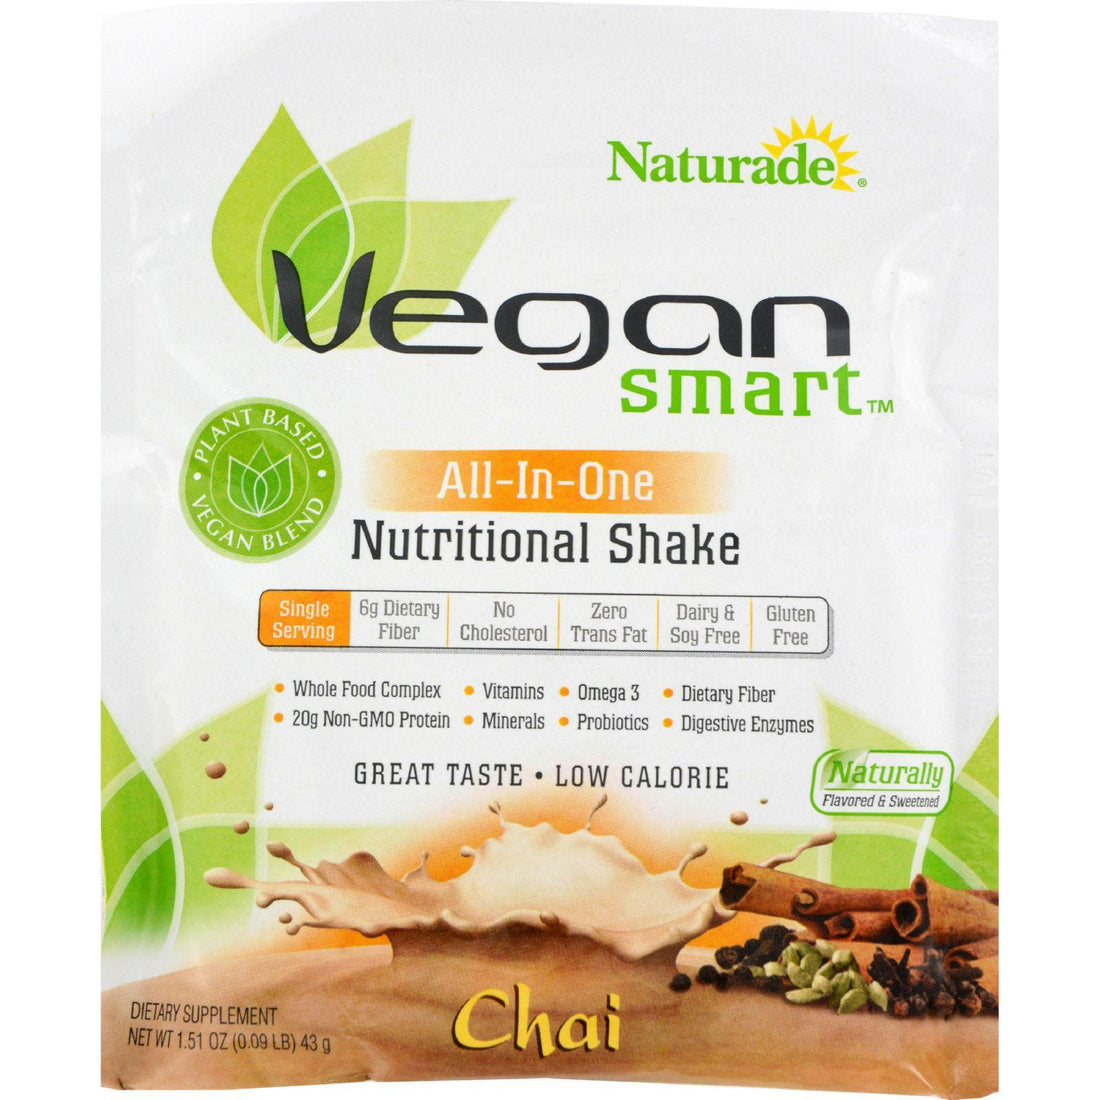 Mother Mantis: Naturade Vegansmart All-in-one Nutritional Shake - Chai - 1.51 Oz - Case Of 12 Naturade